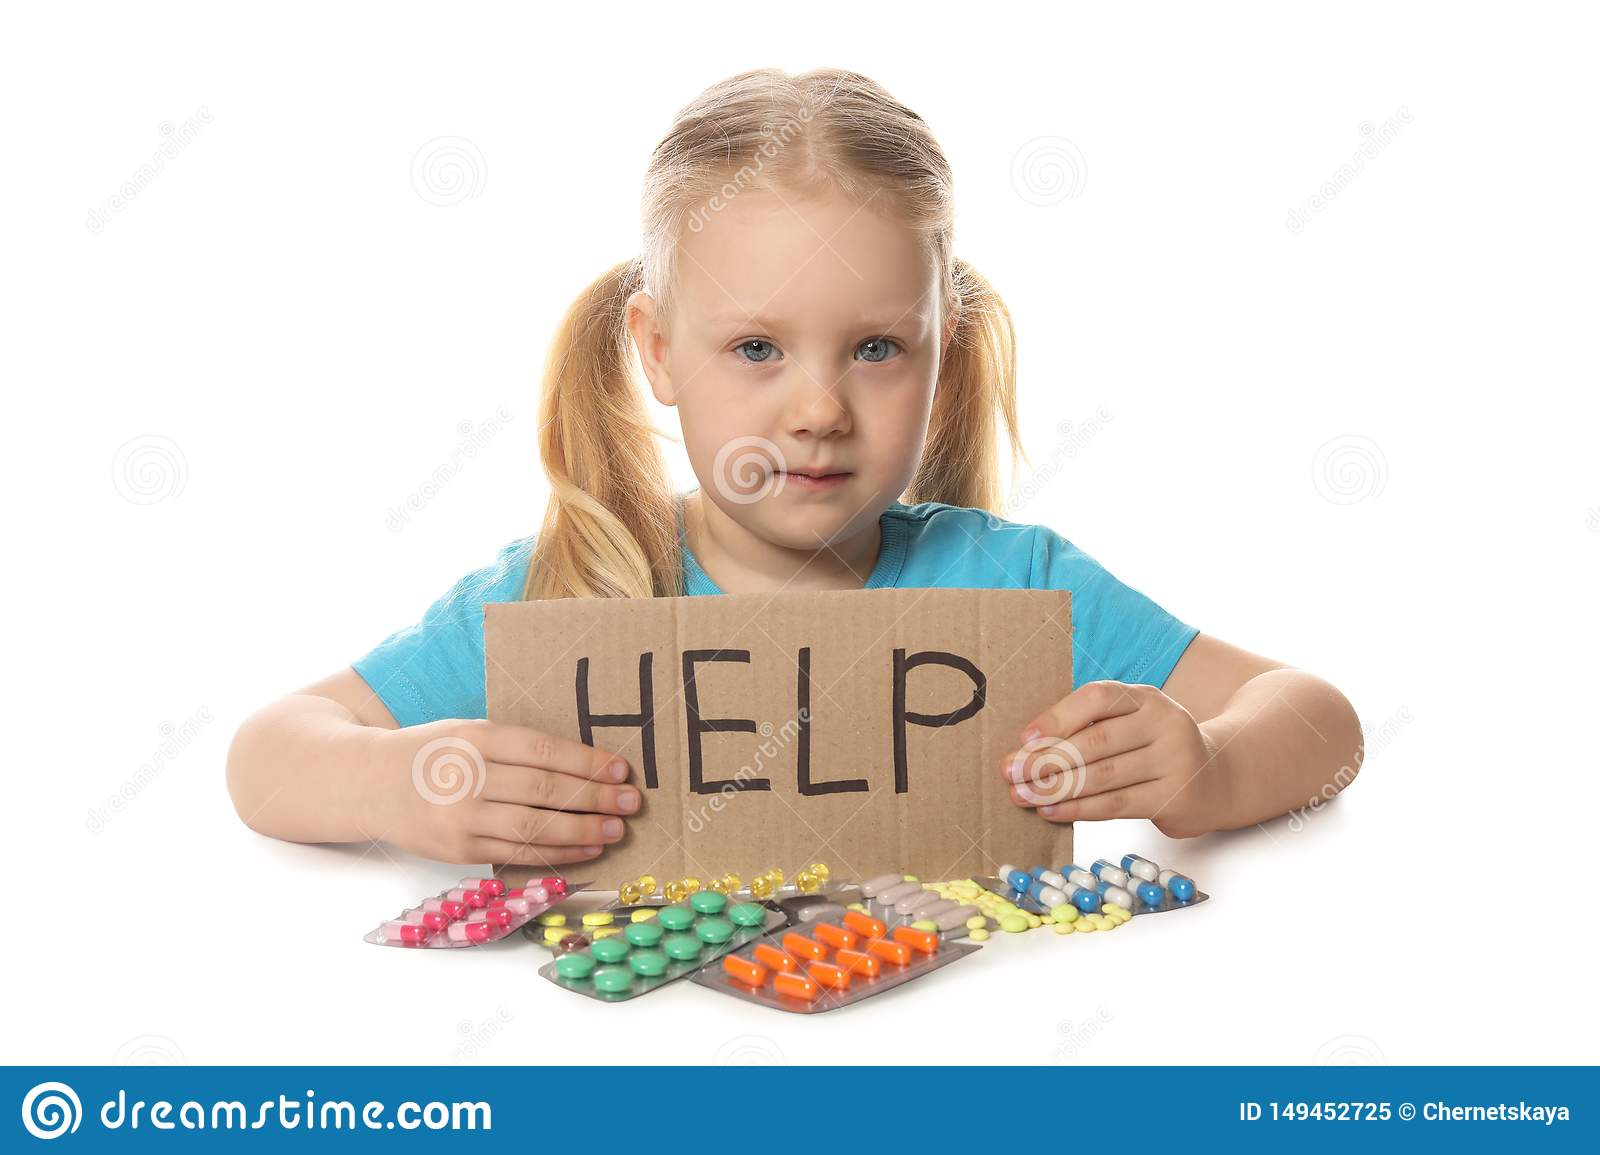 Little child with many different pills and word Help written on cardboard. Danger of medicament